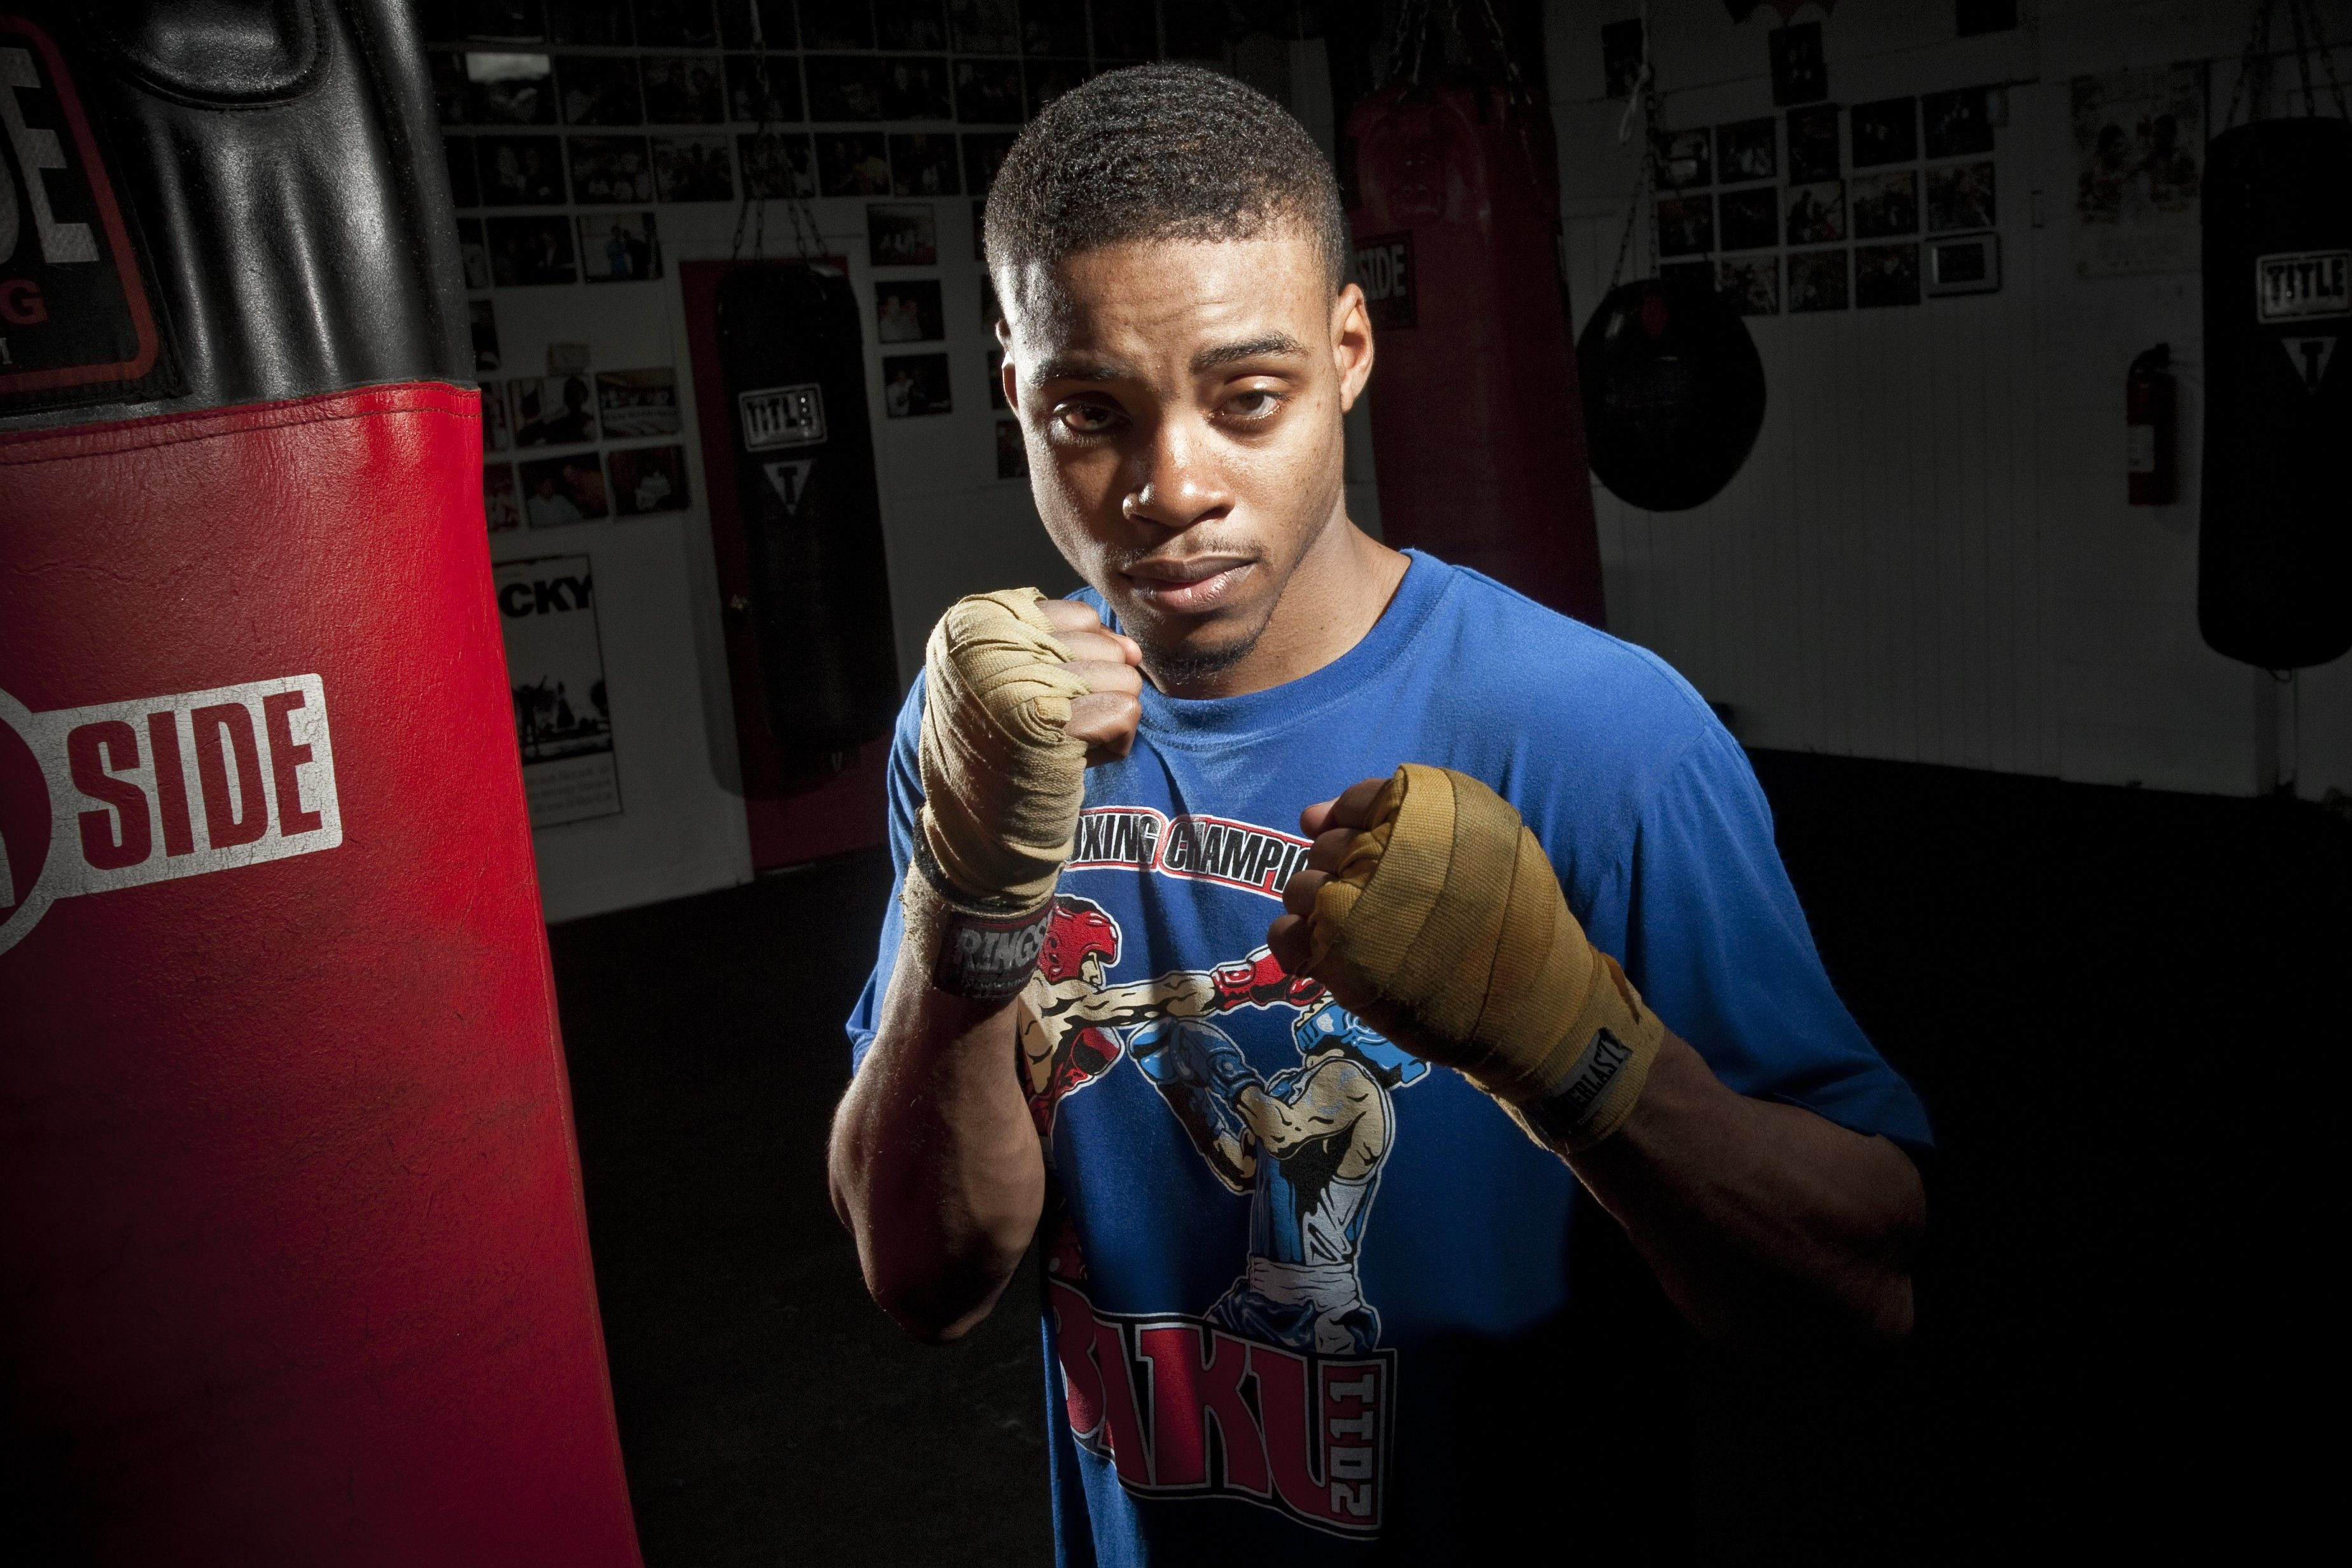 """Errol Spence: """"I told Haymon that after Pacquiao I want to fight Crawford """""""